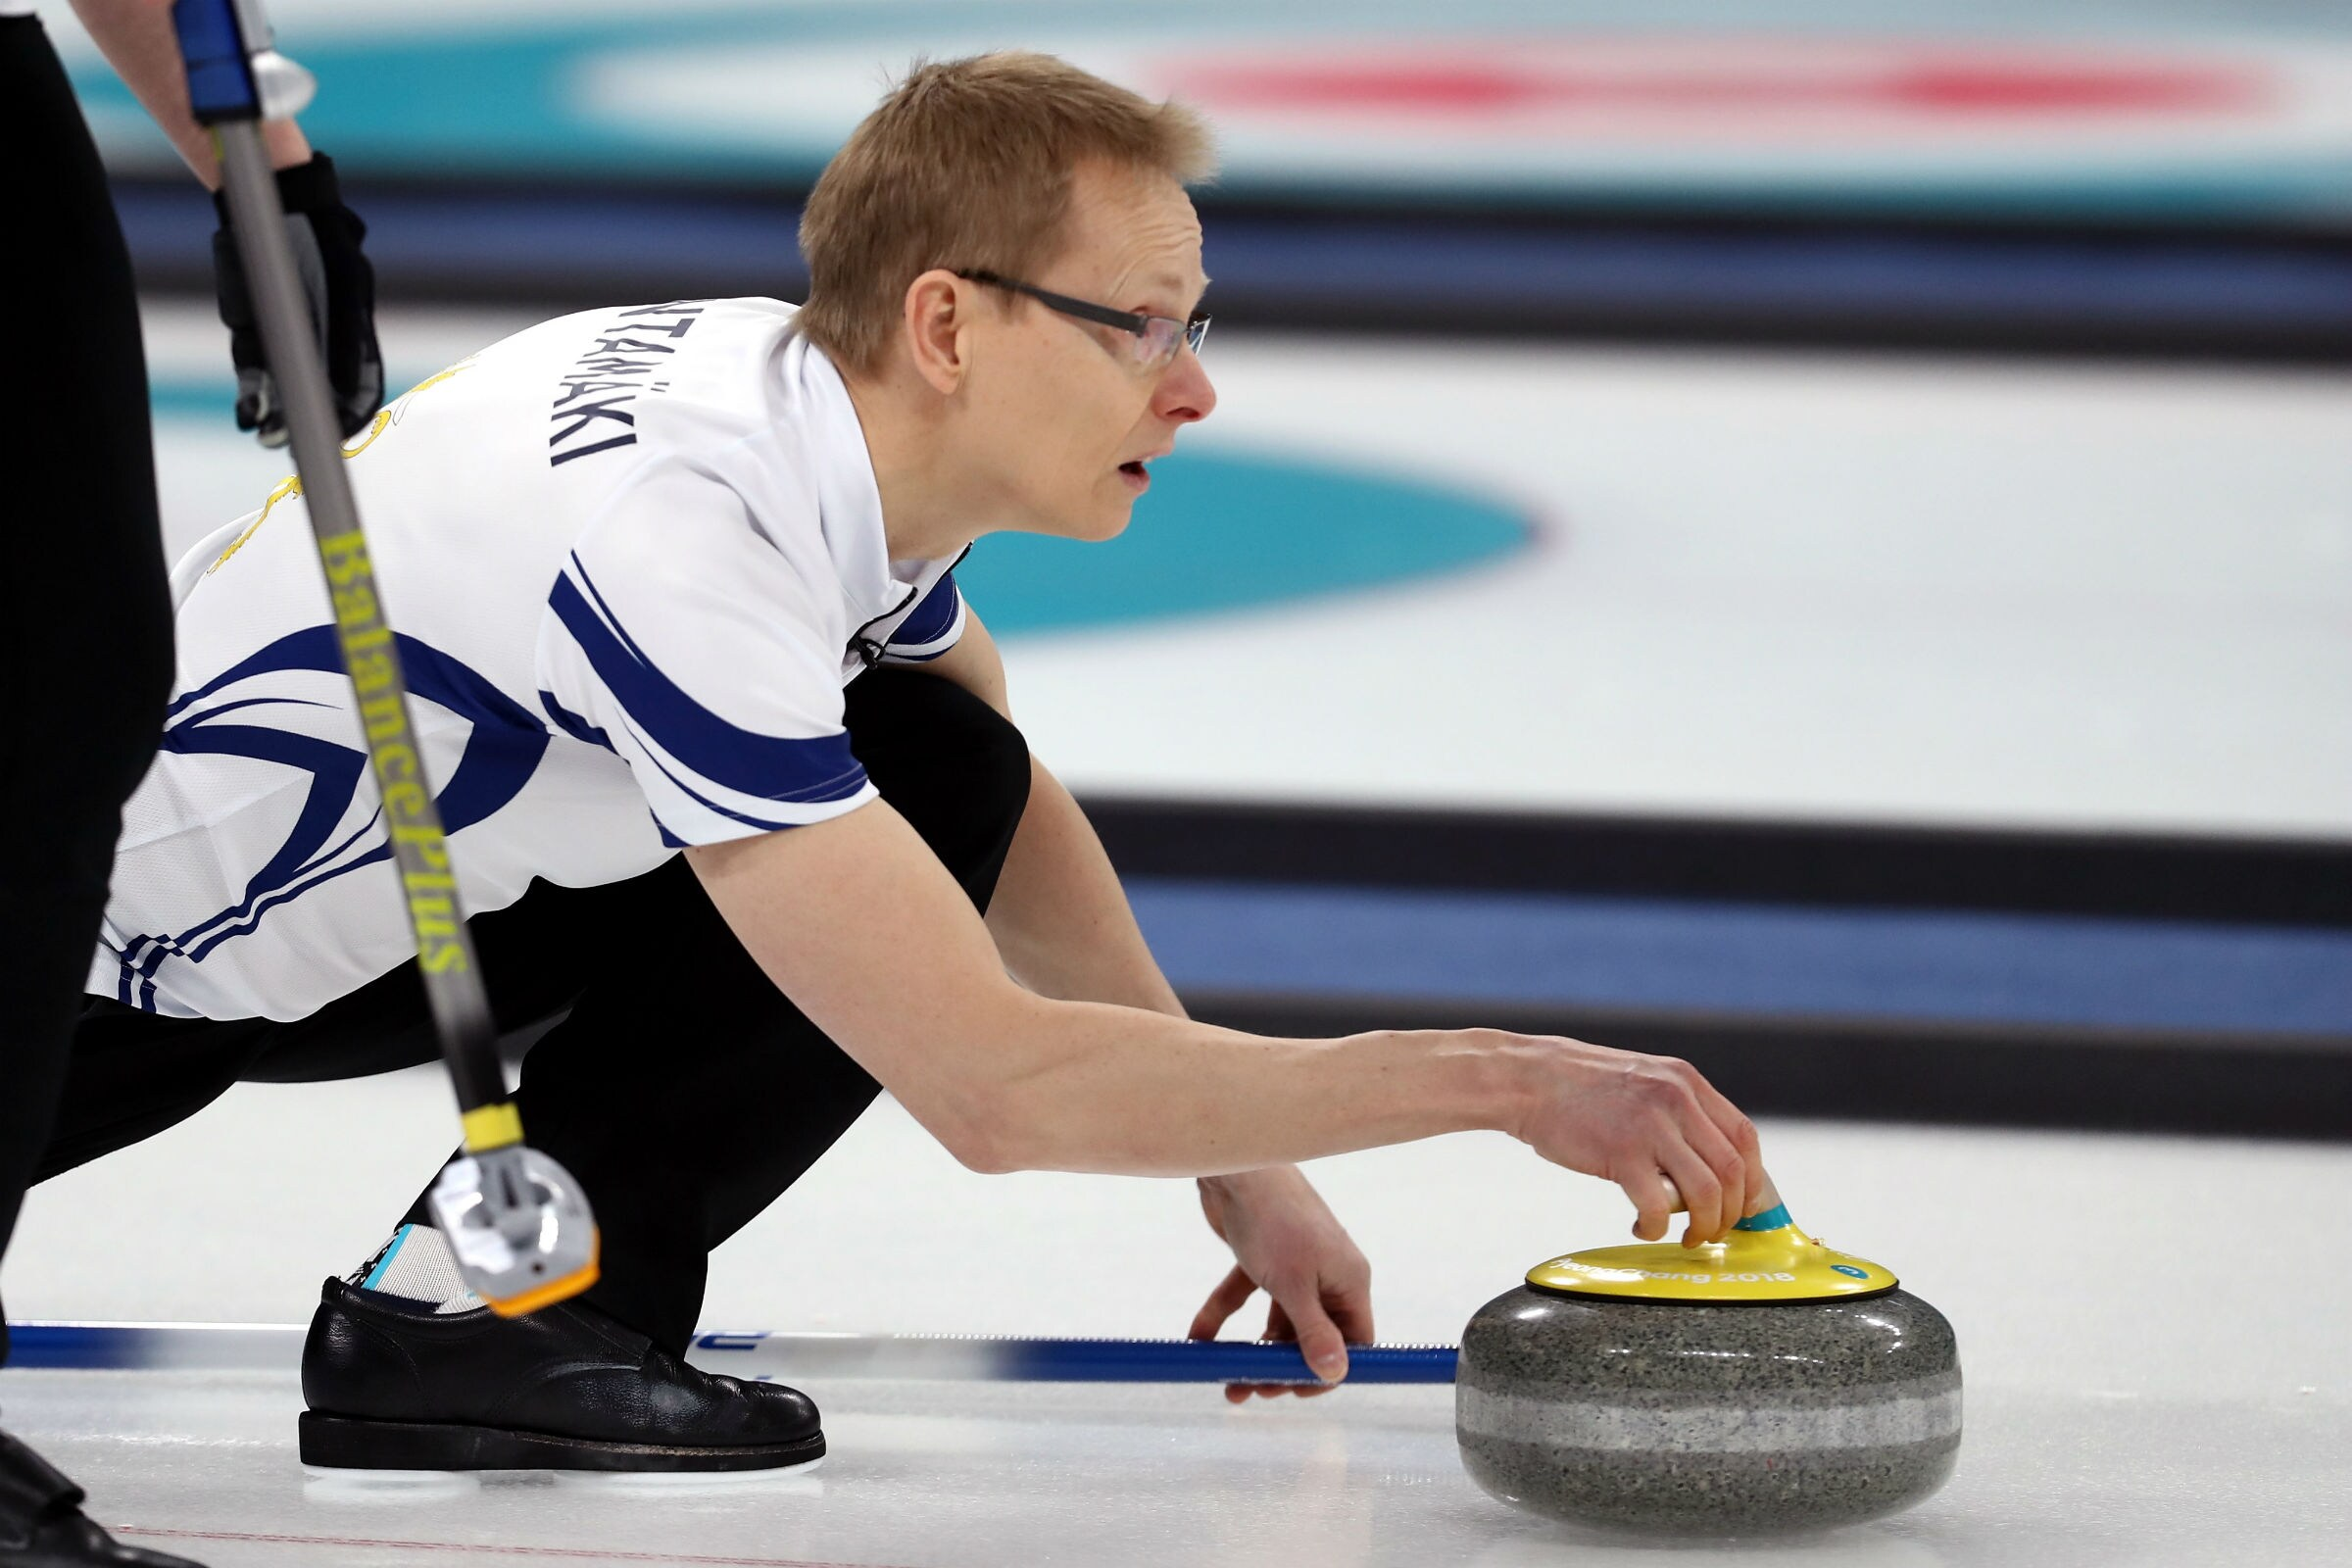 Curling - Mixed Doubles